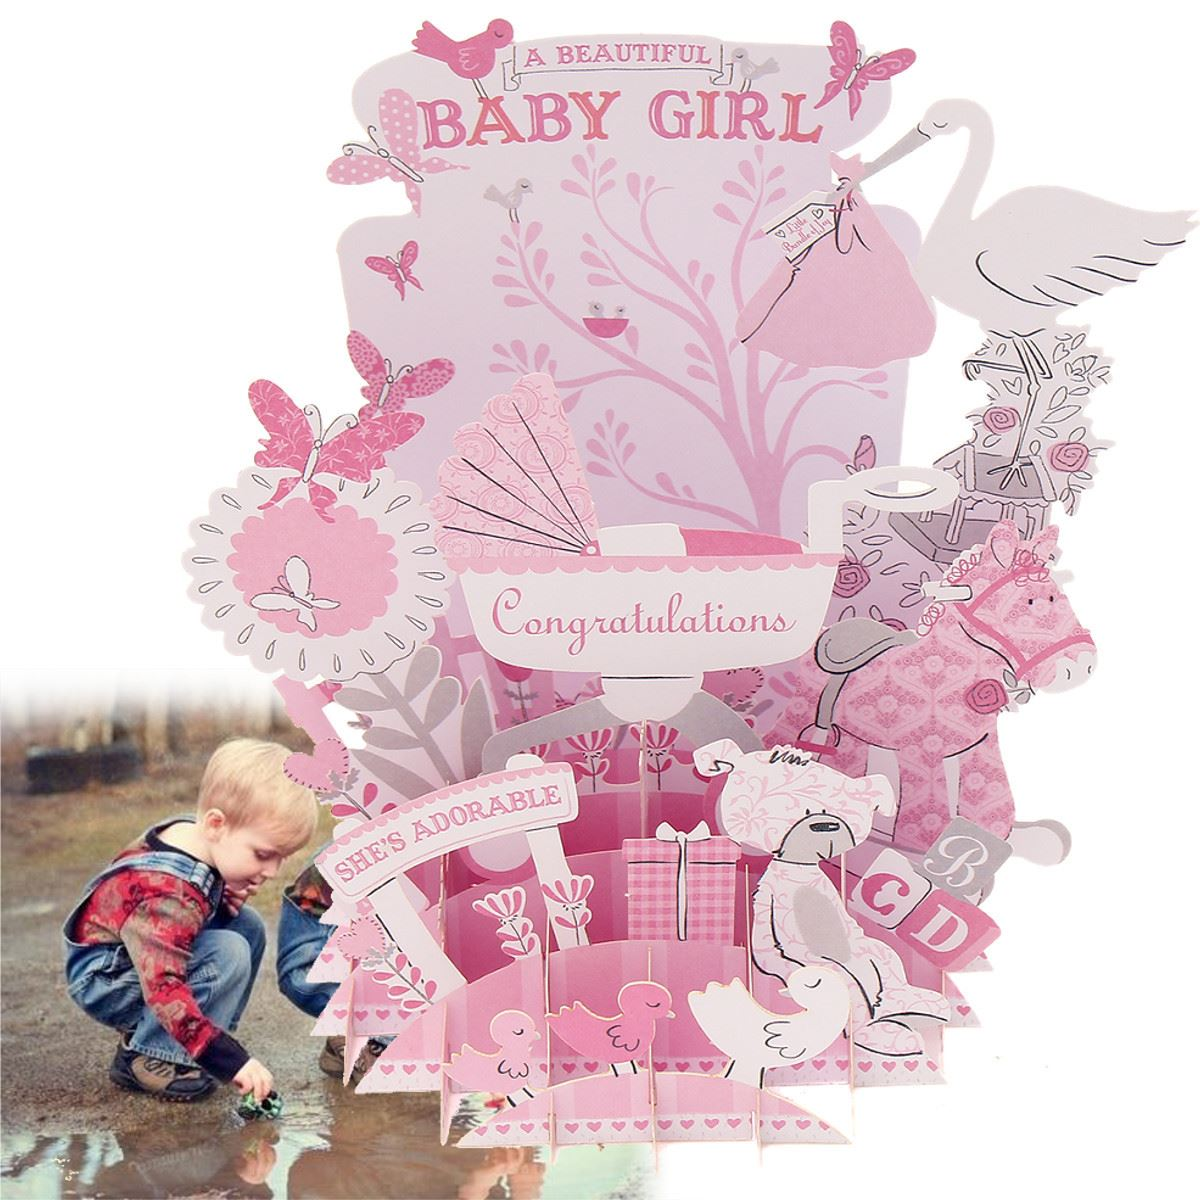 Pink Baby 3D Pop Up Greeting Card Postcard Baby Shower DIY Invitation Card Decoration Crafts Events Party Supplies Favors(China (Mainland))